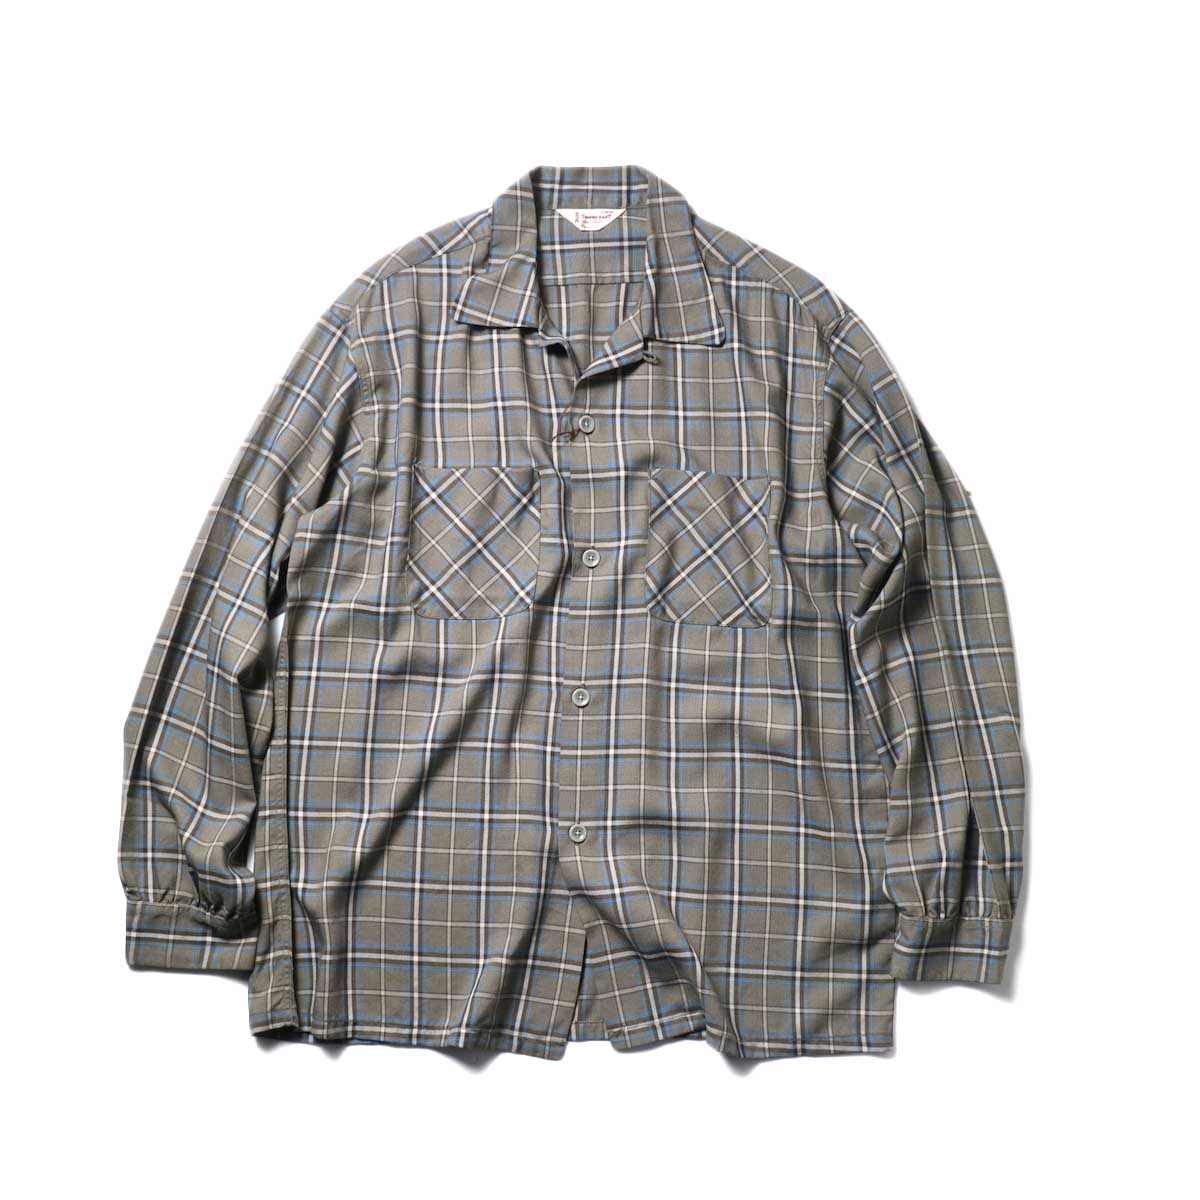 TOWN CRAFT / CLASSIC CHECK OPEN SHIRTS (Gray)